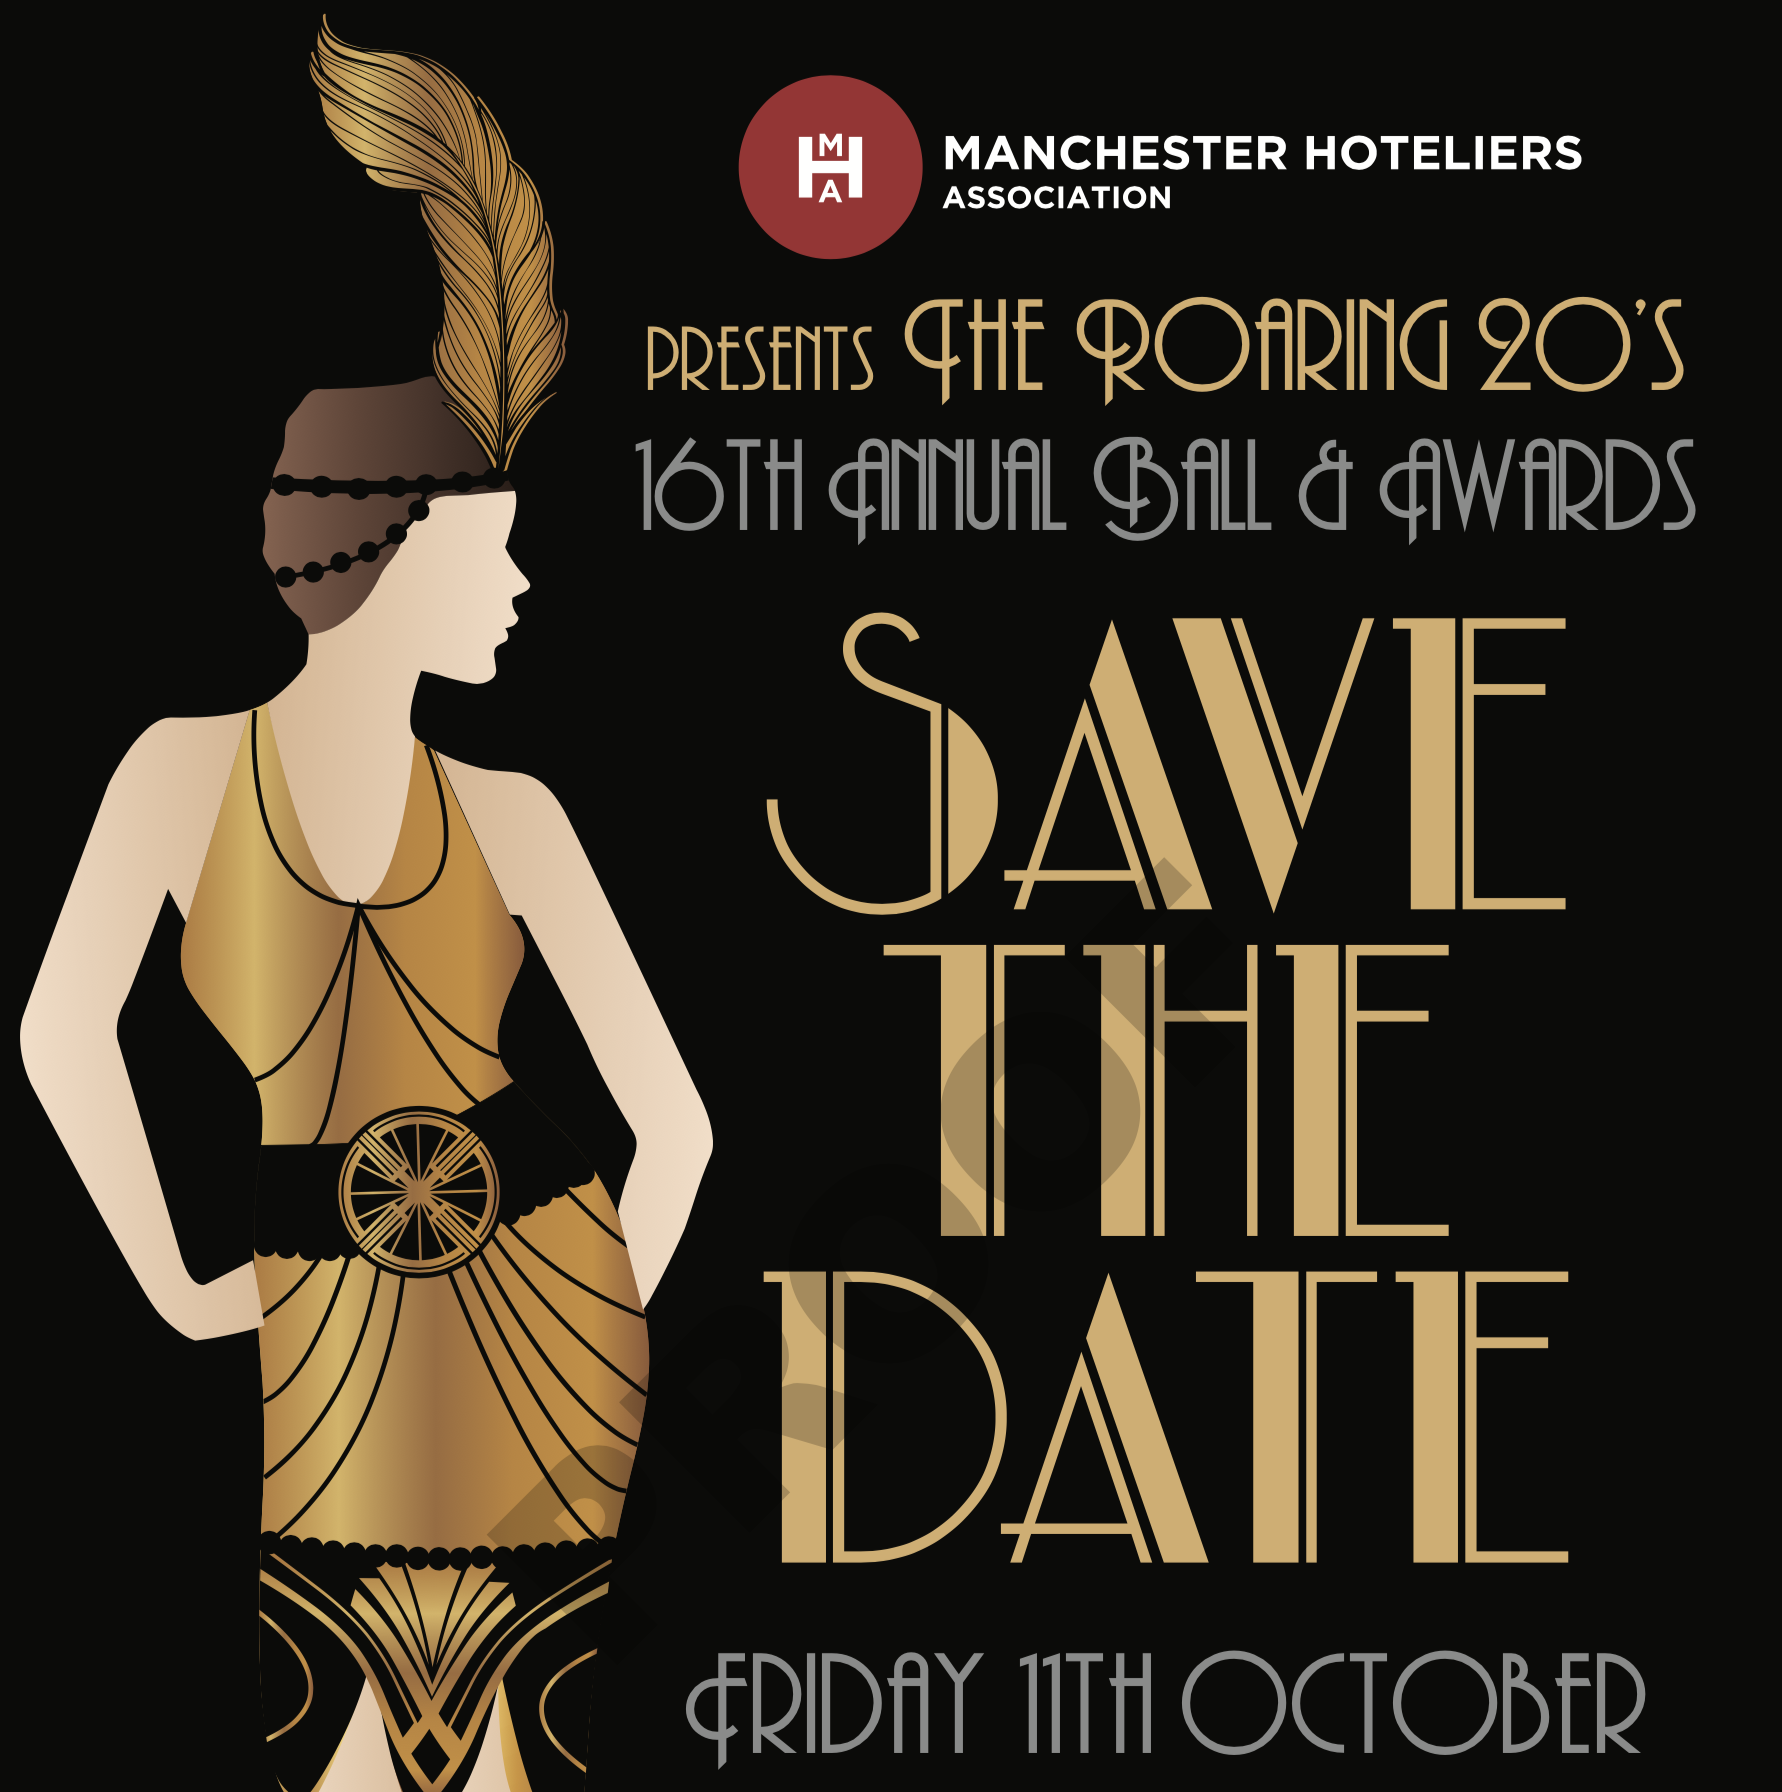 Save the date – 16th Annual Ball & Awards